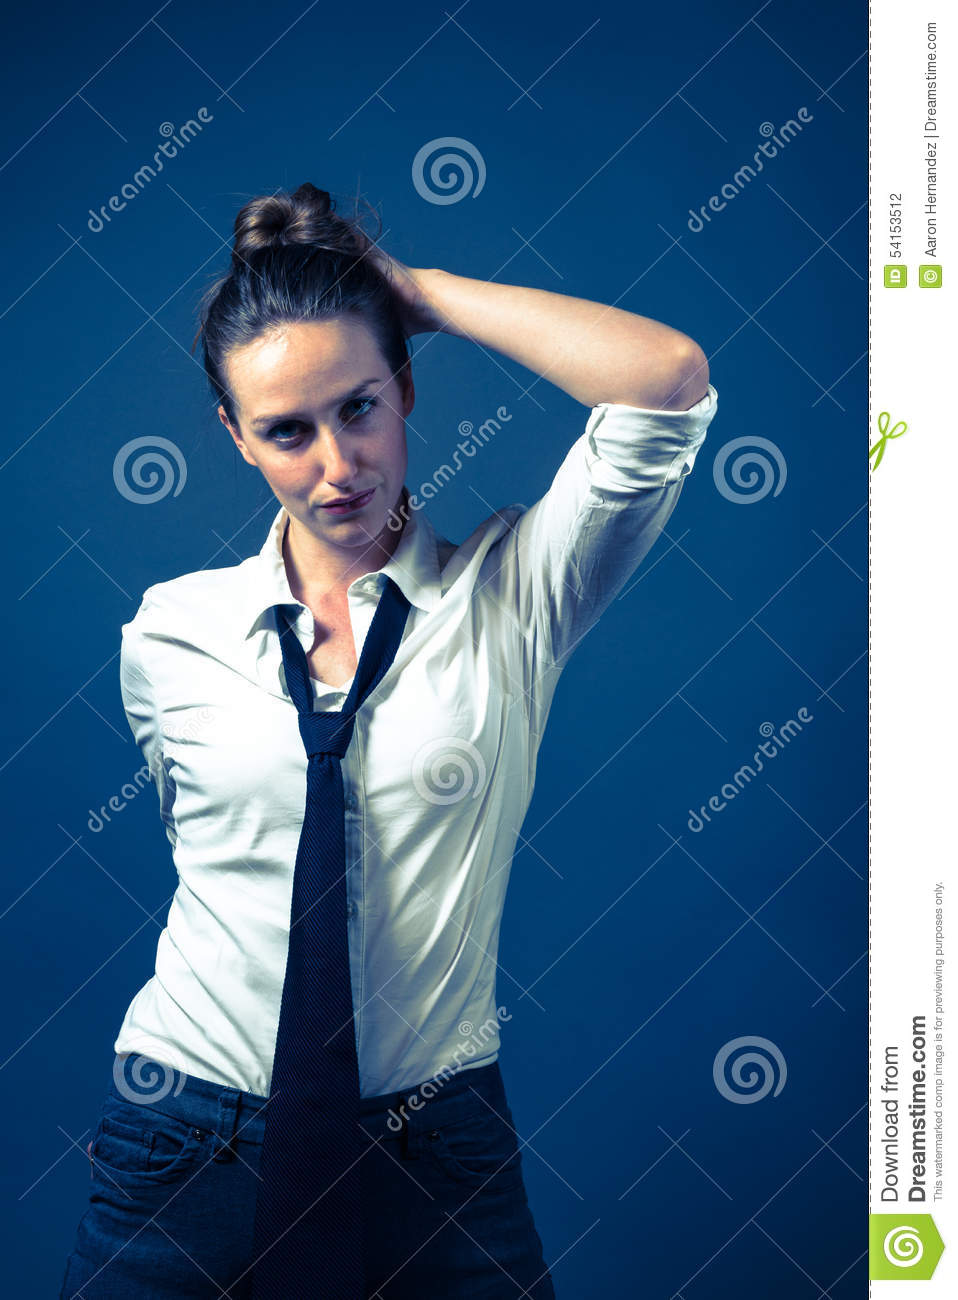 American Woman In White Shirt & Tie Stock Photo - Image: 54153512